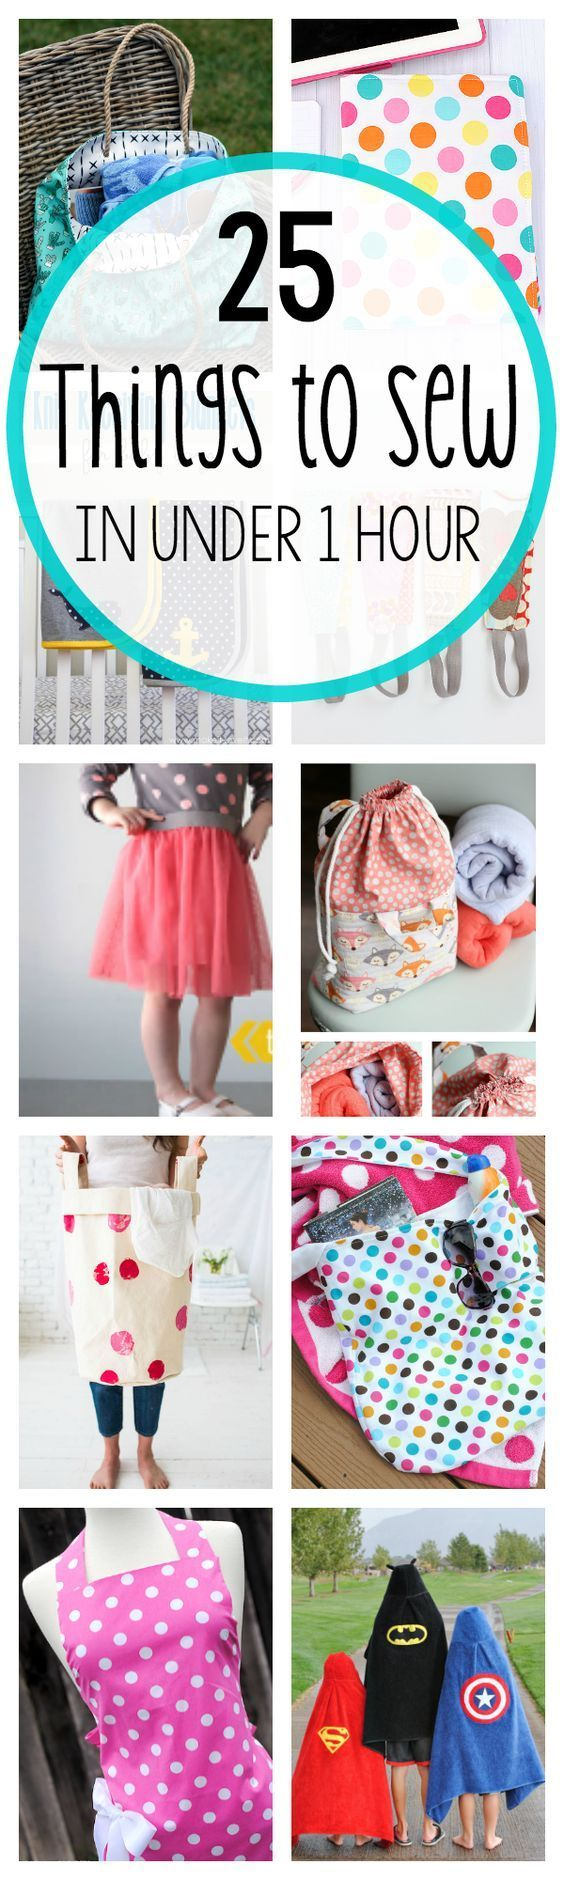 Easy Sewing Projects: 25 Things to Sew in Under 1 Hour